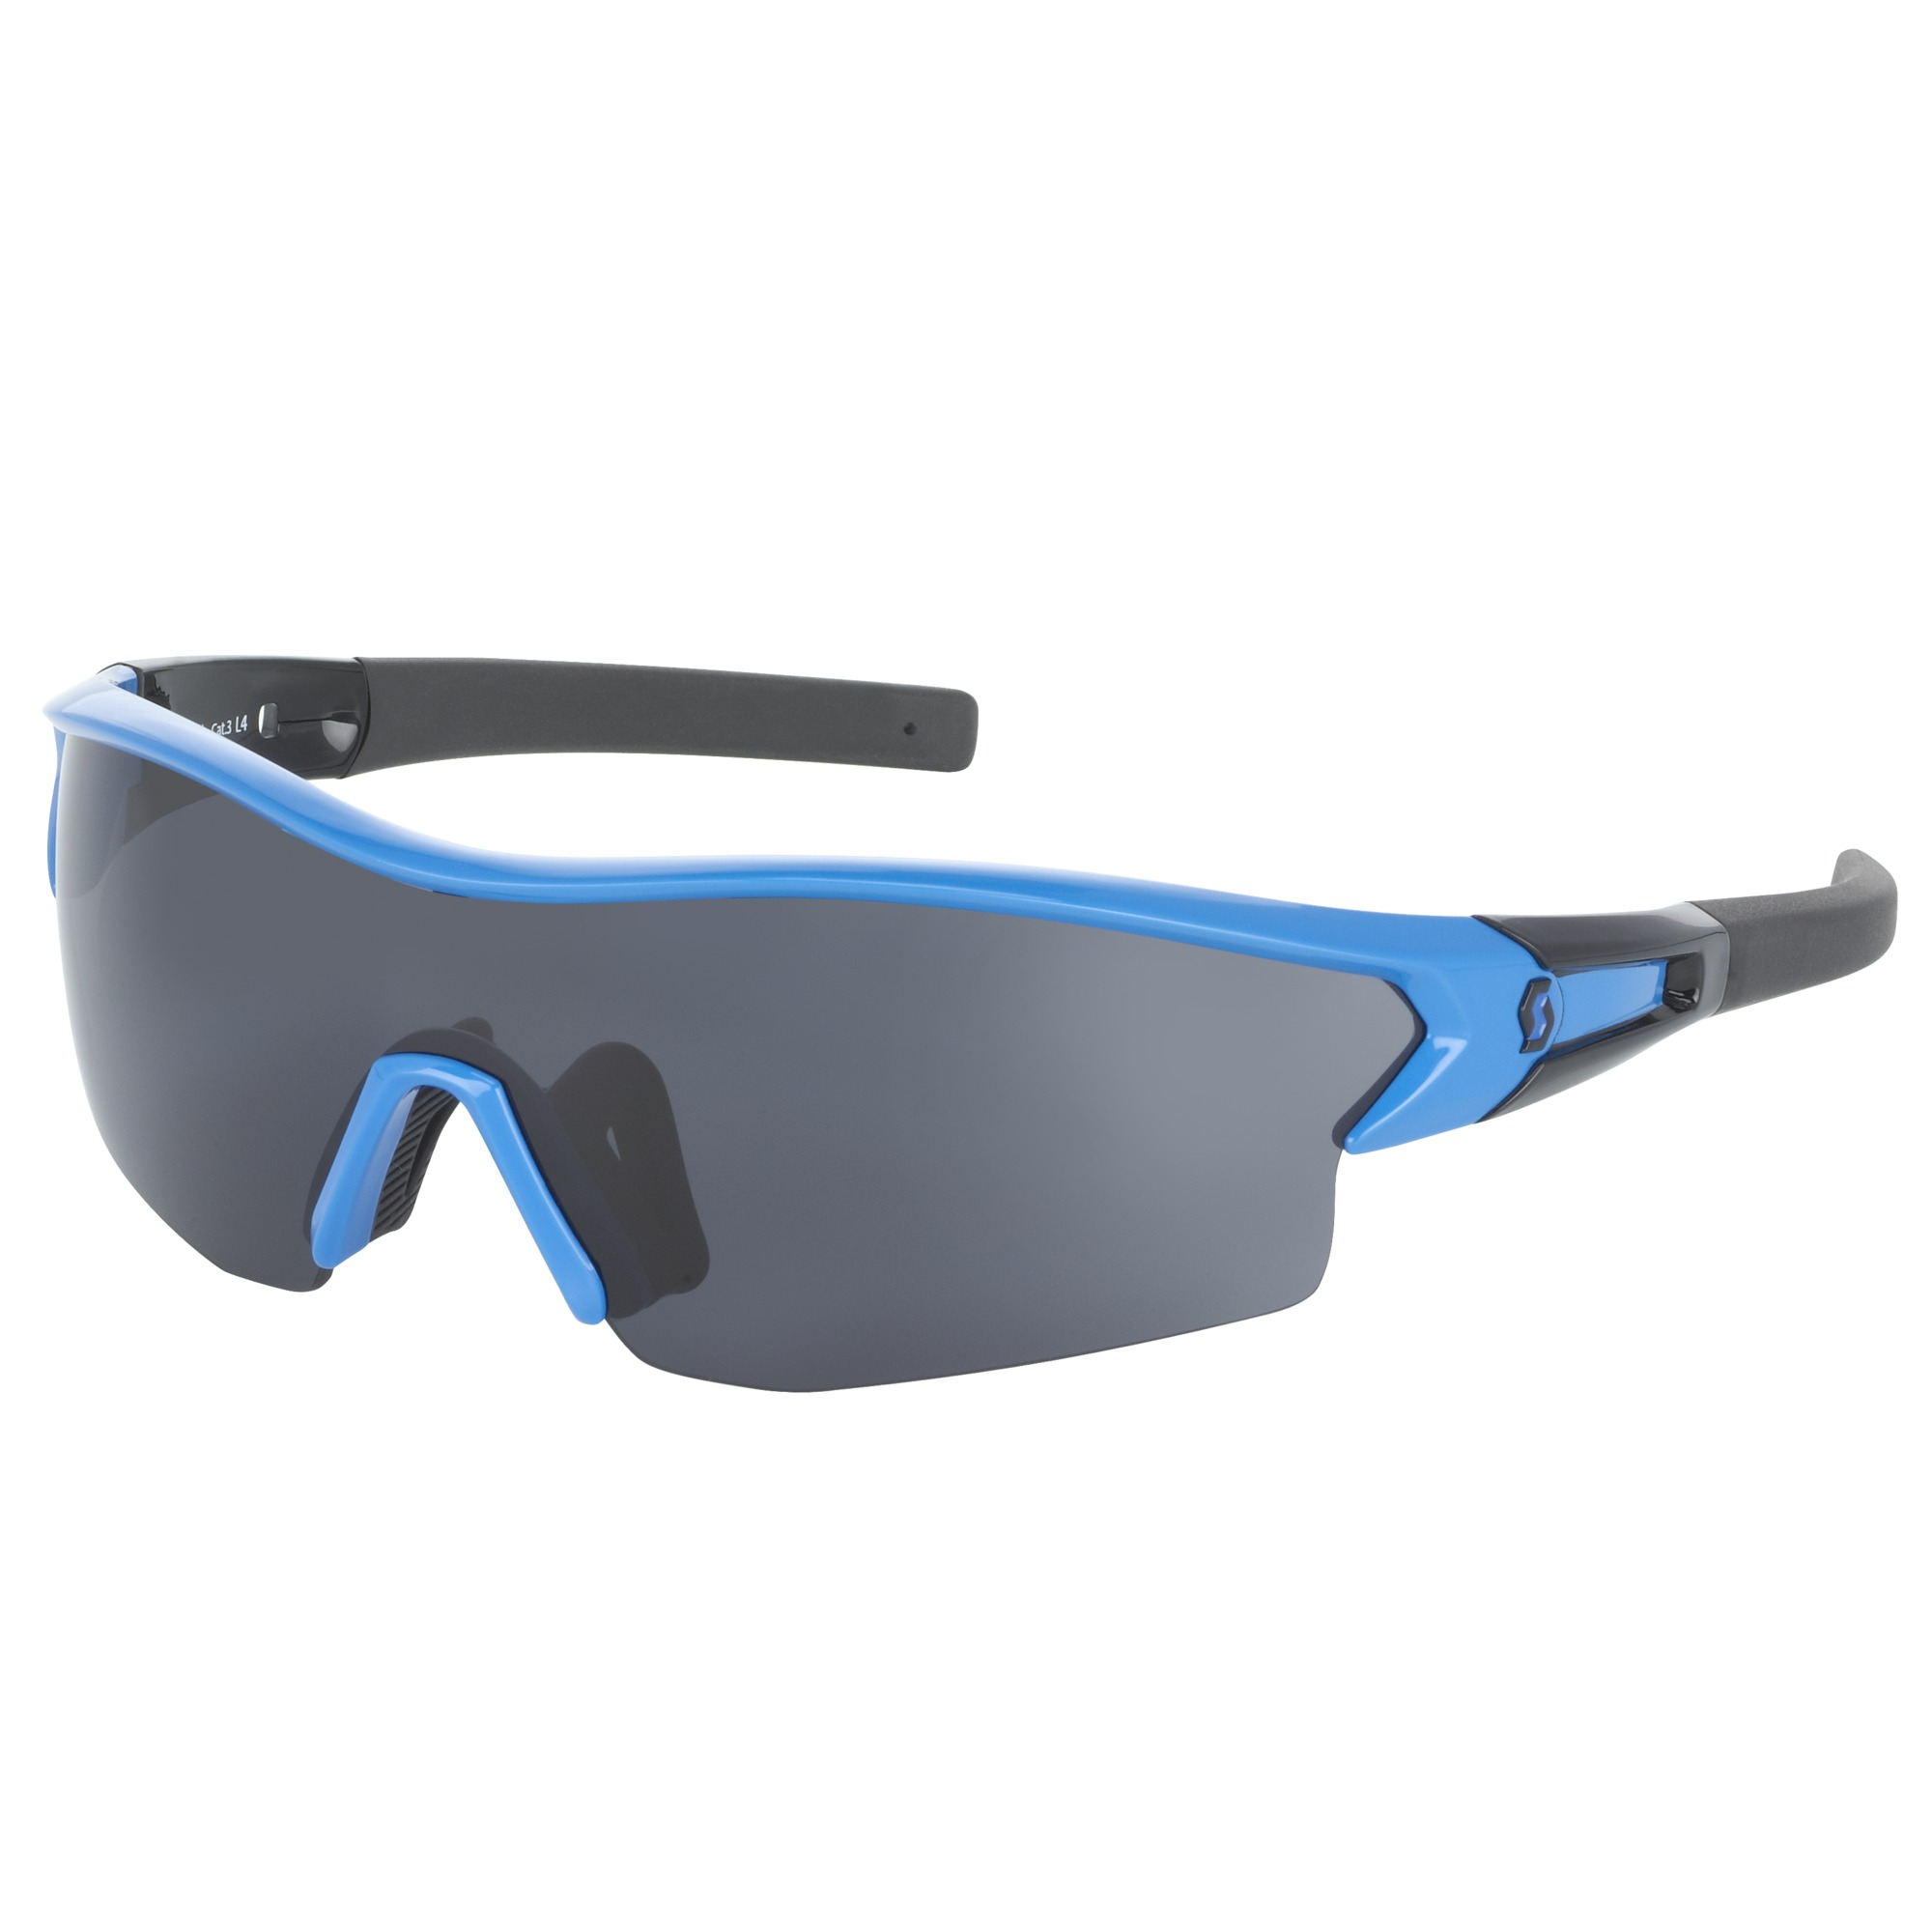 OCCHIALE SPORTIVO SCOTT LEAP SUNGLASSES 238999 BLUE GLOSSY BLACK.jpg